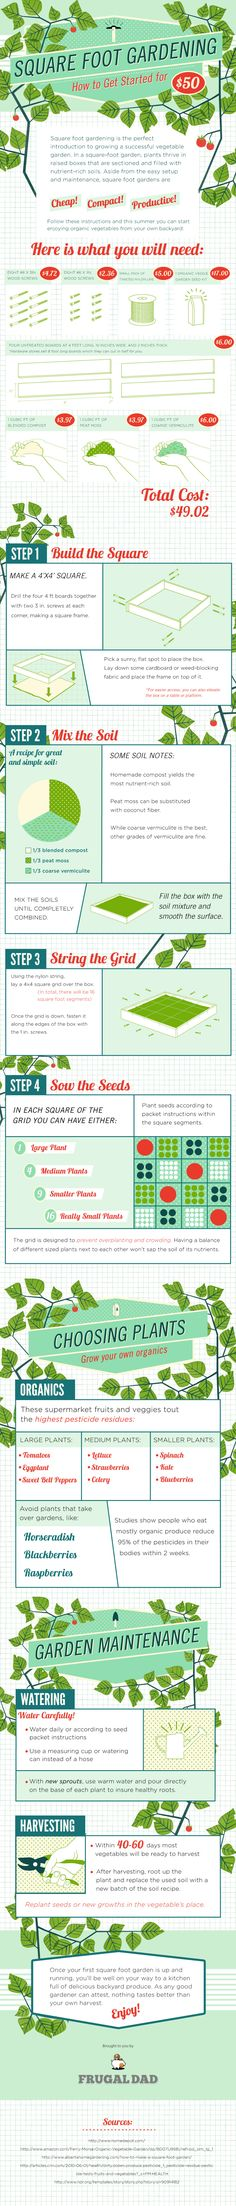 Square foot gardening how-to